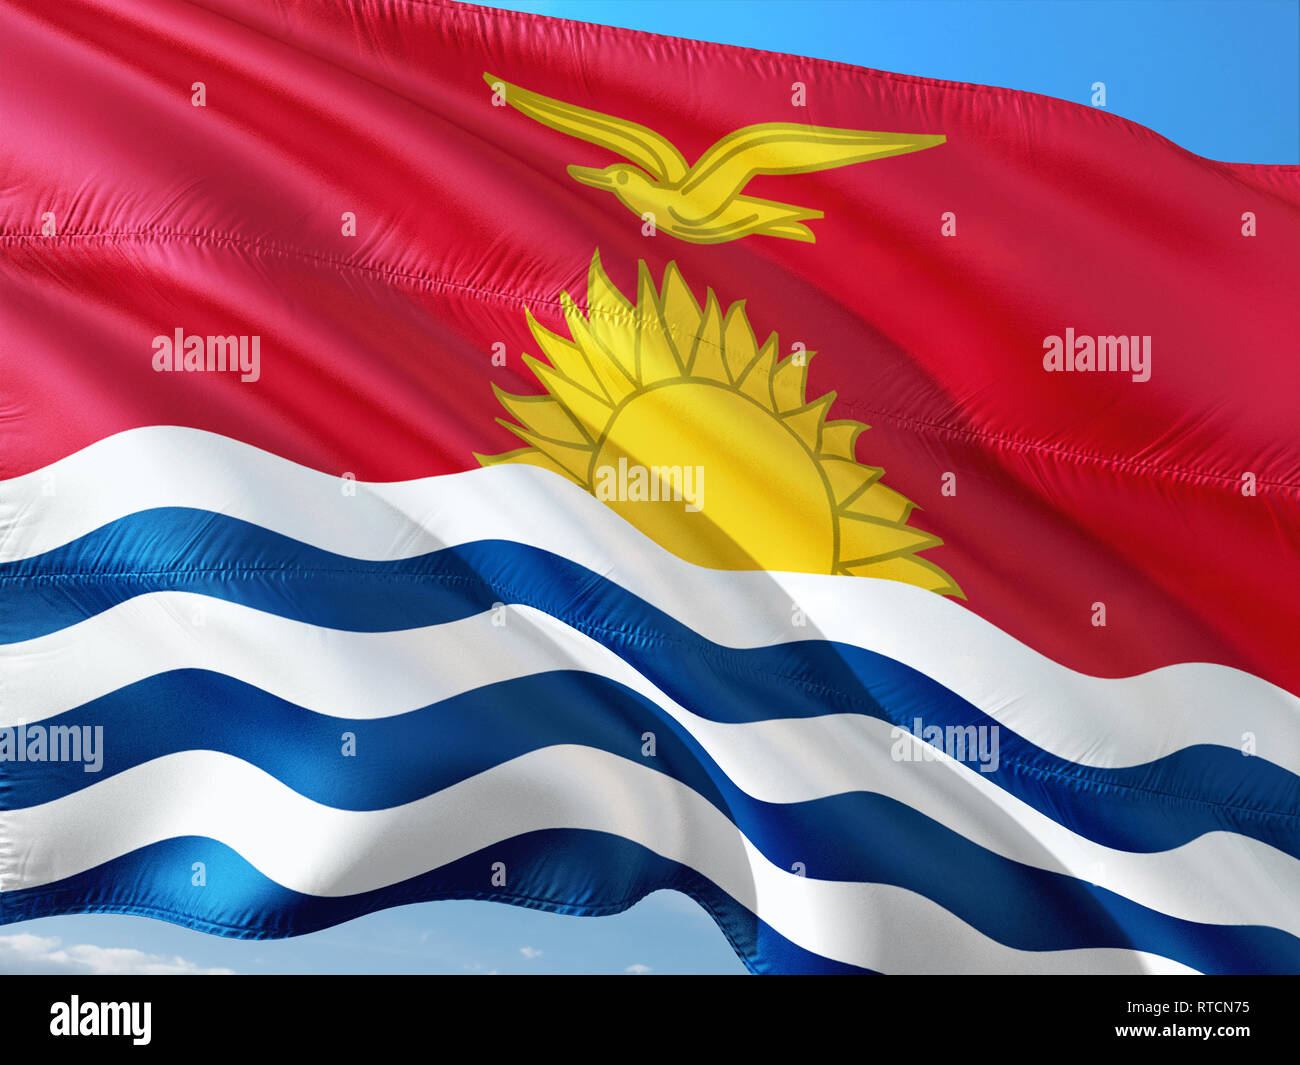 Flag of Kiribati waving in the wind against deep blue sky. High quality fabric. - Stock Image